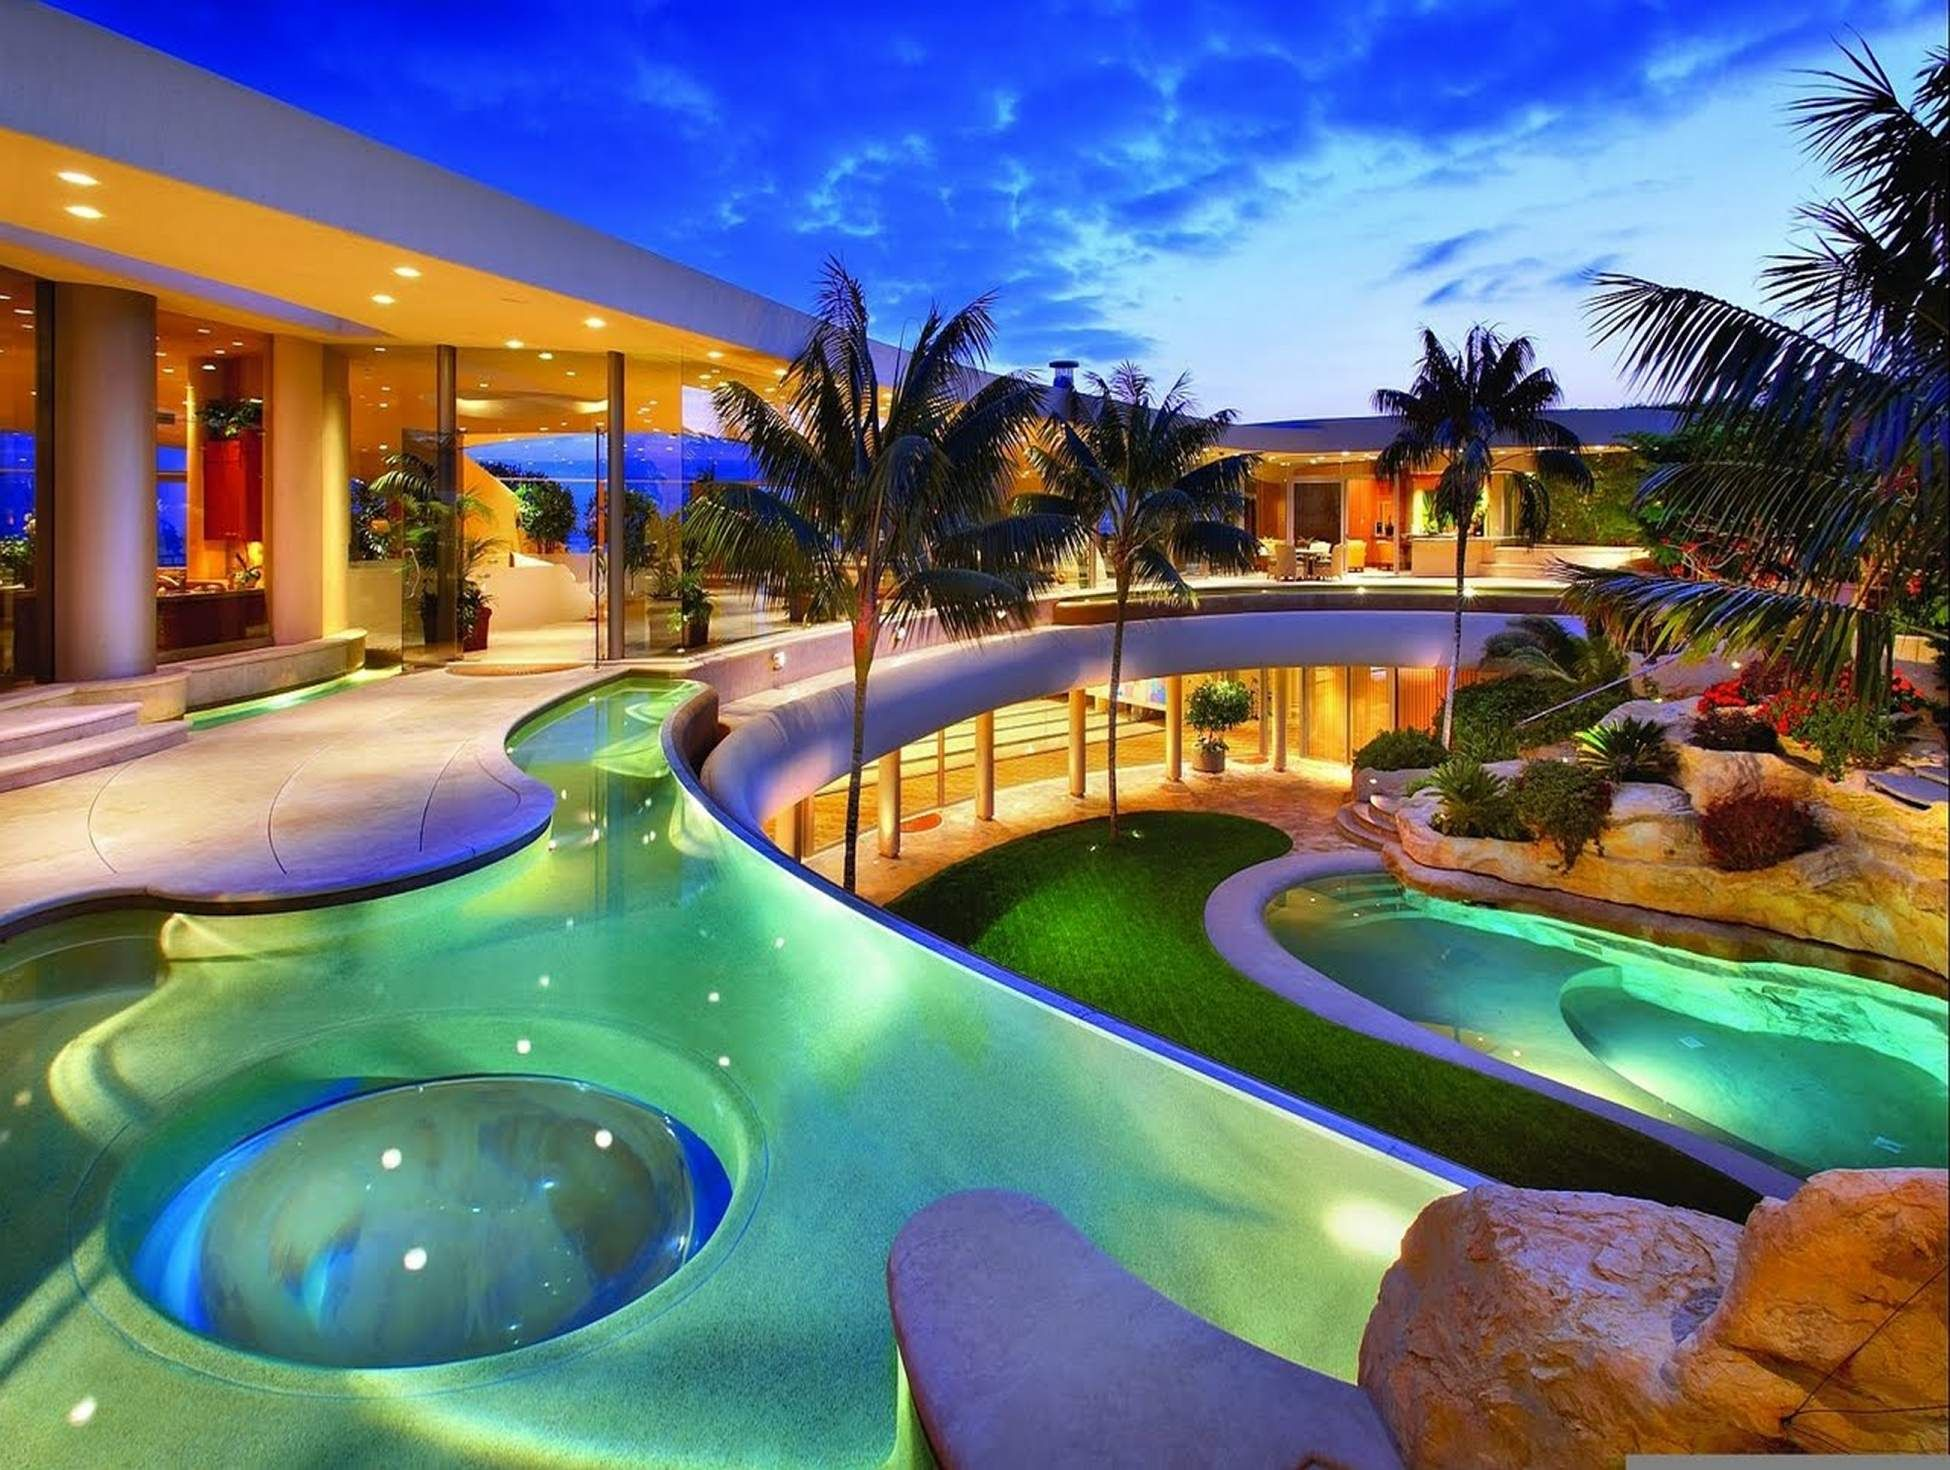 the best design of big mansion with pool for your modern house decoration idea 15